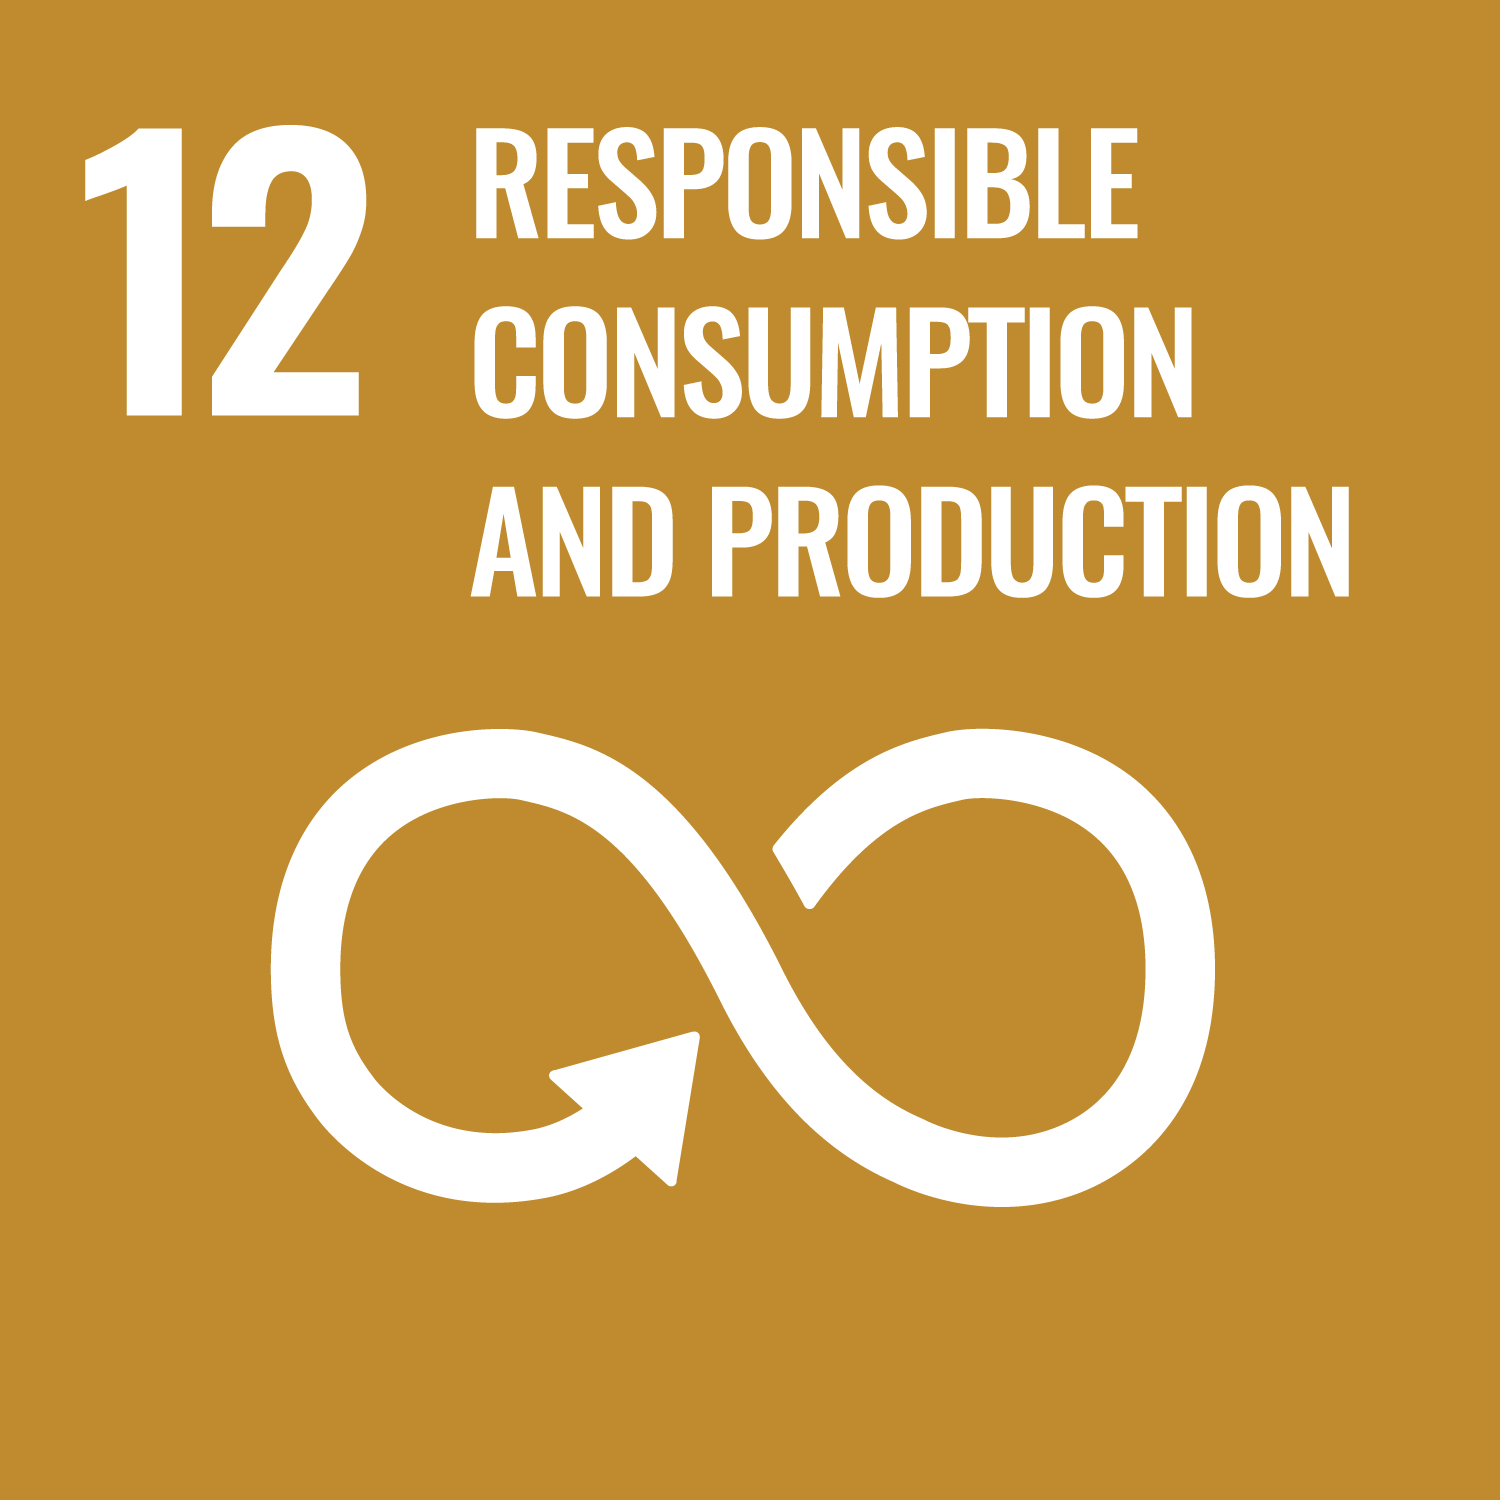 Sustainability Responsible Consumption and Production